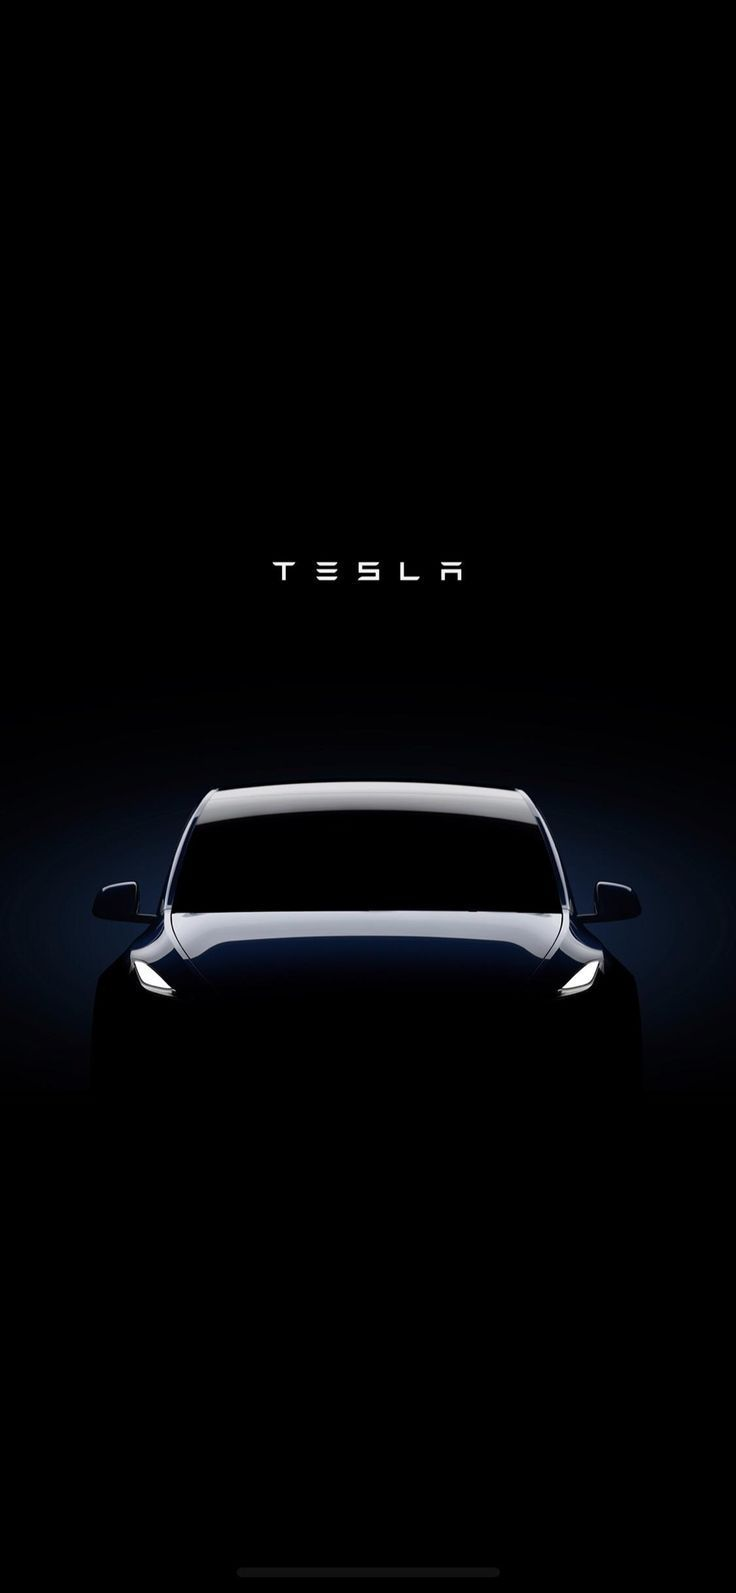 Iphonexwallpaperfullhd Iphonexwallpaperhd1080p Iphonexwallpaperhd4k Iphonexwallpaperhddownload Iphonexwallpaperli Tesla Tesla Car Car Iphone Wallpaper